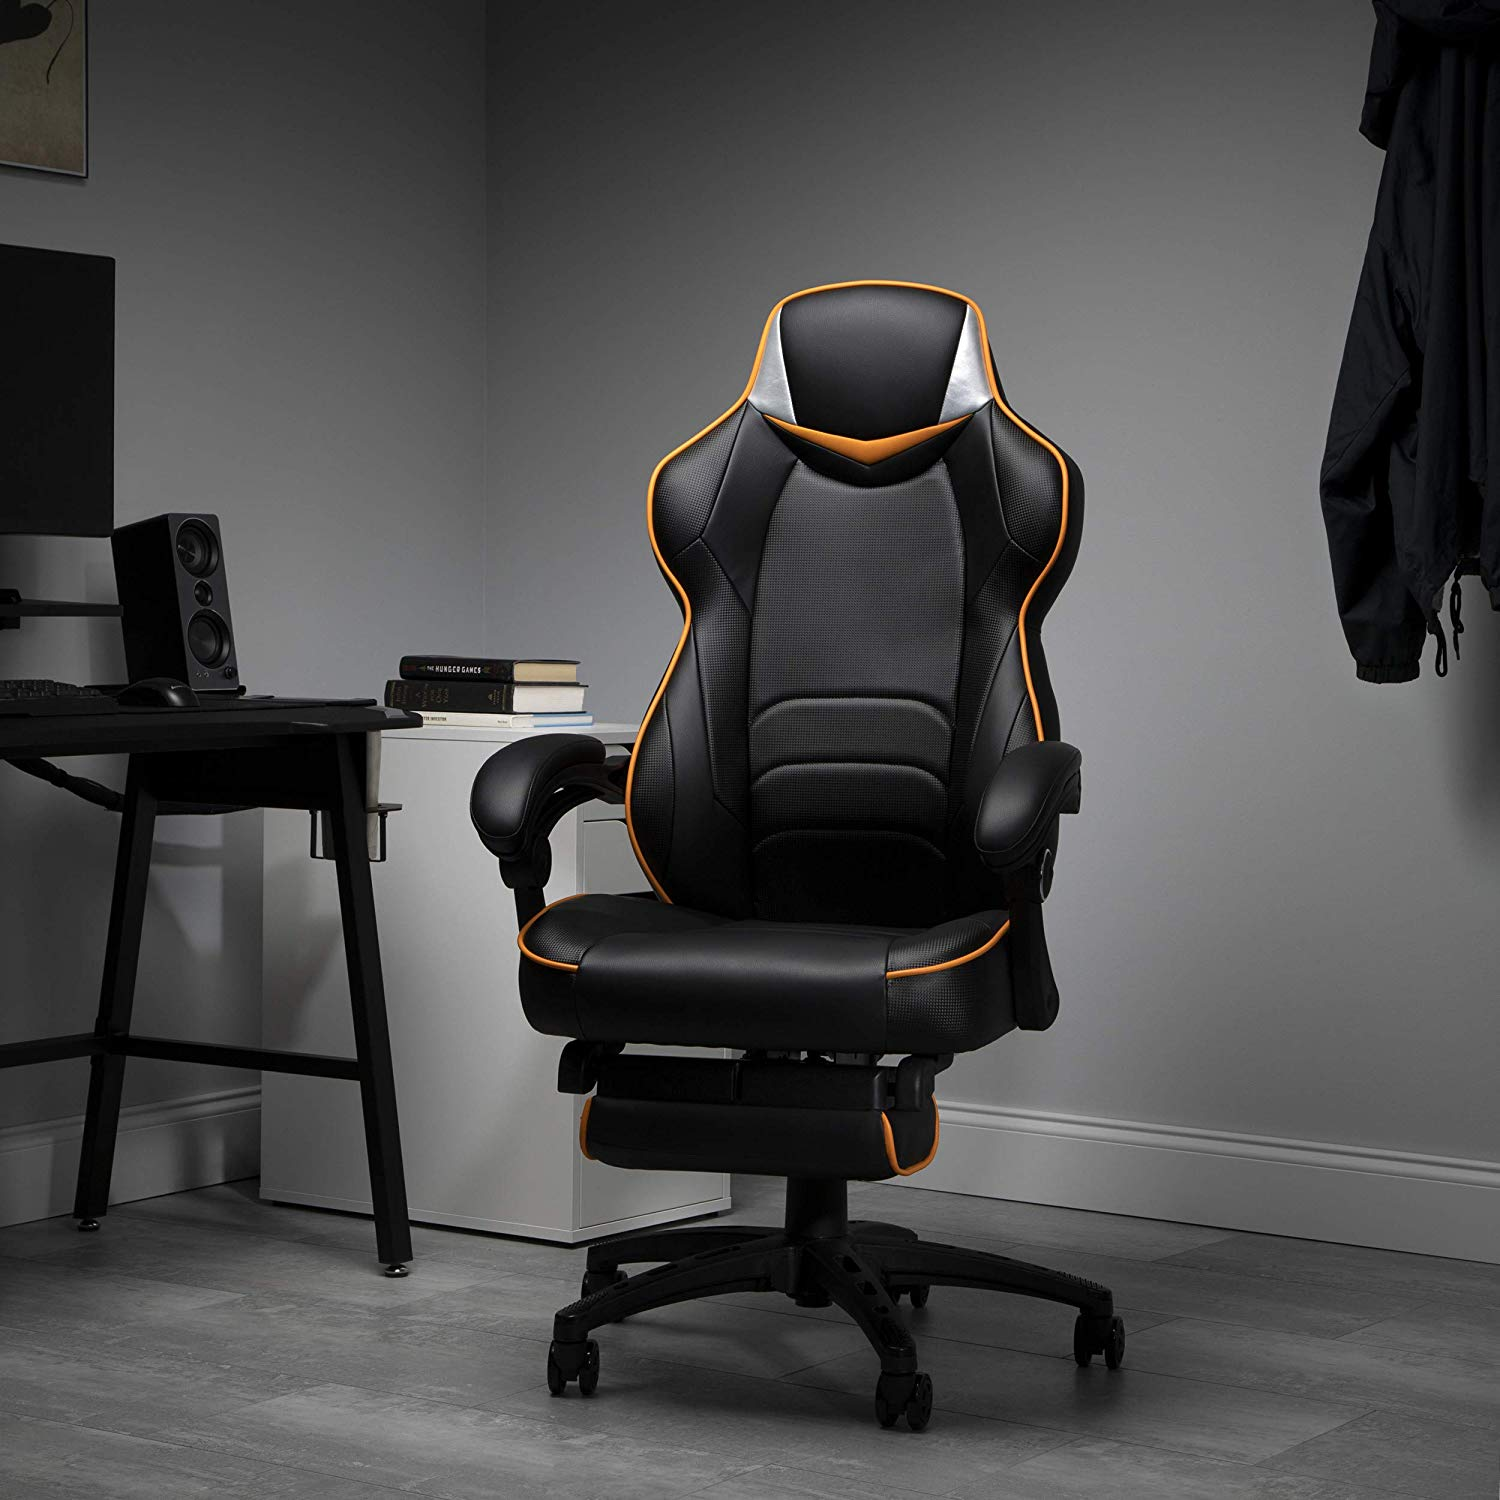 Fortnite OMEGA-Xi Gaming Chair, RESPAWN by OFM